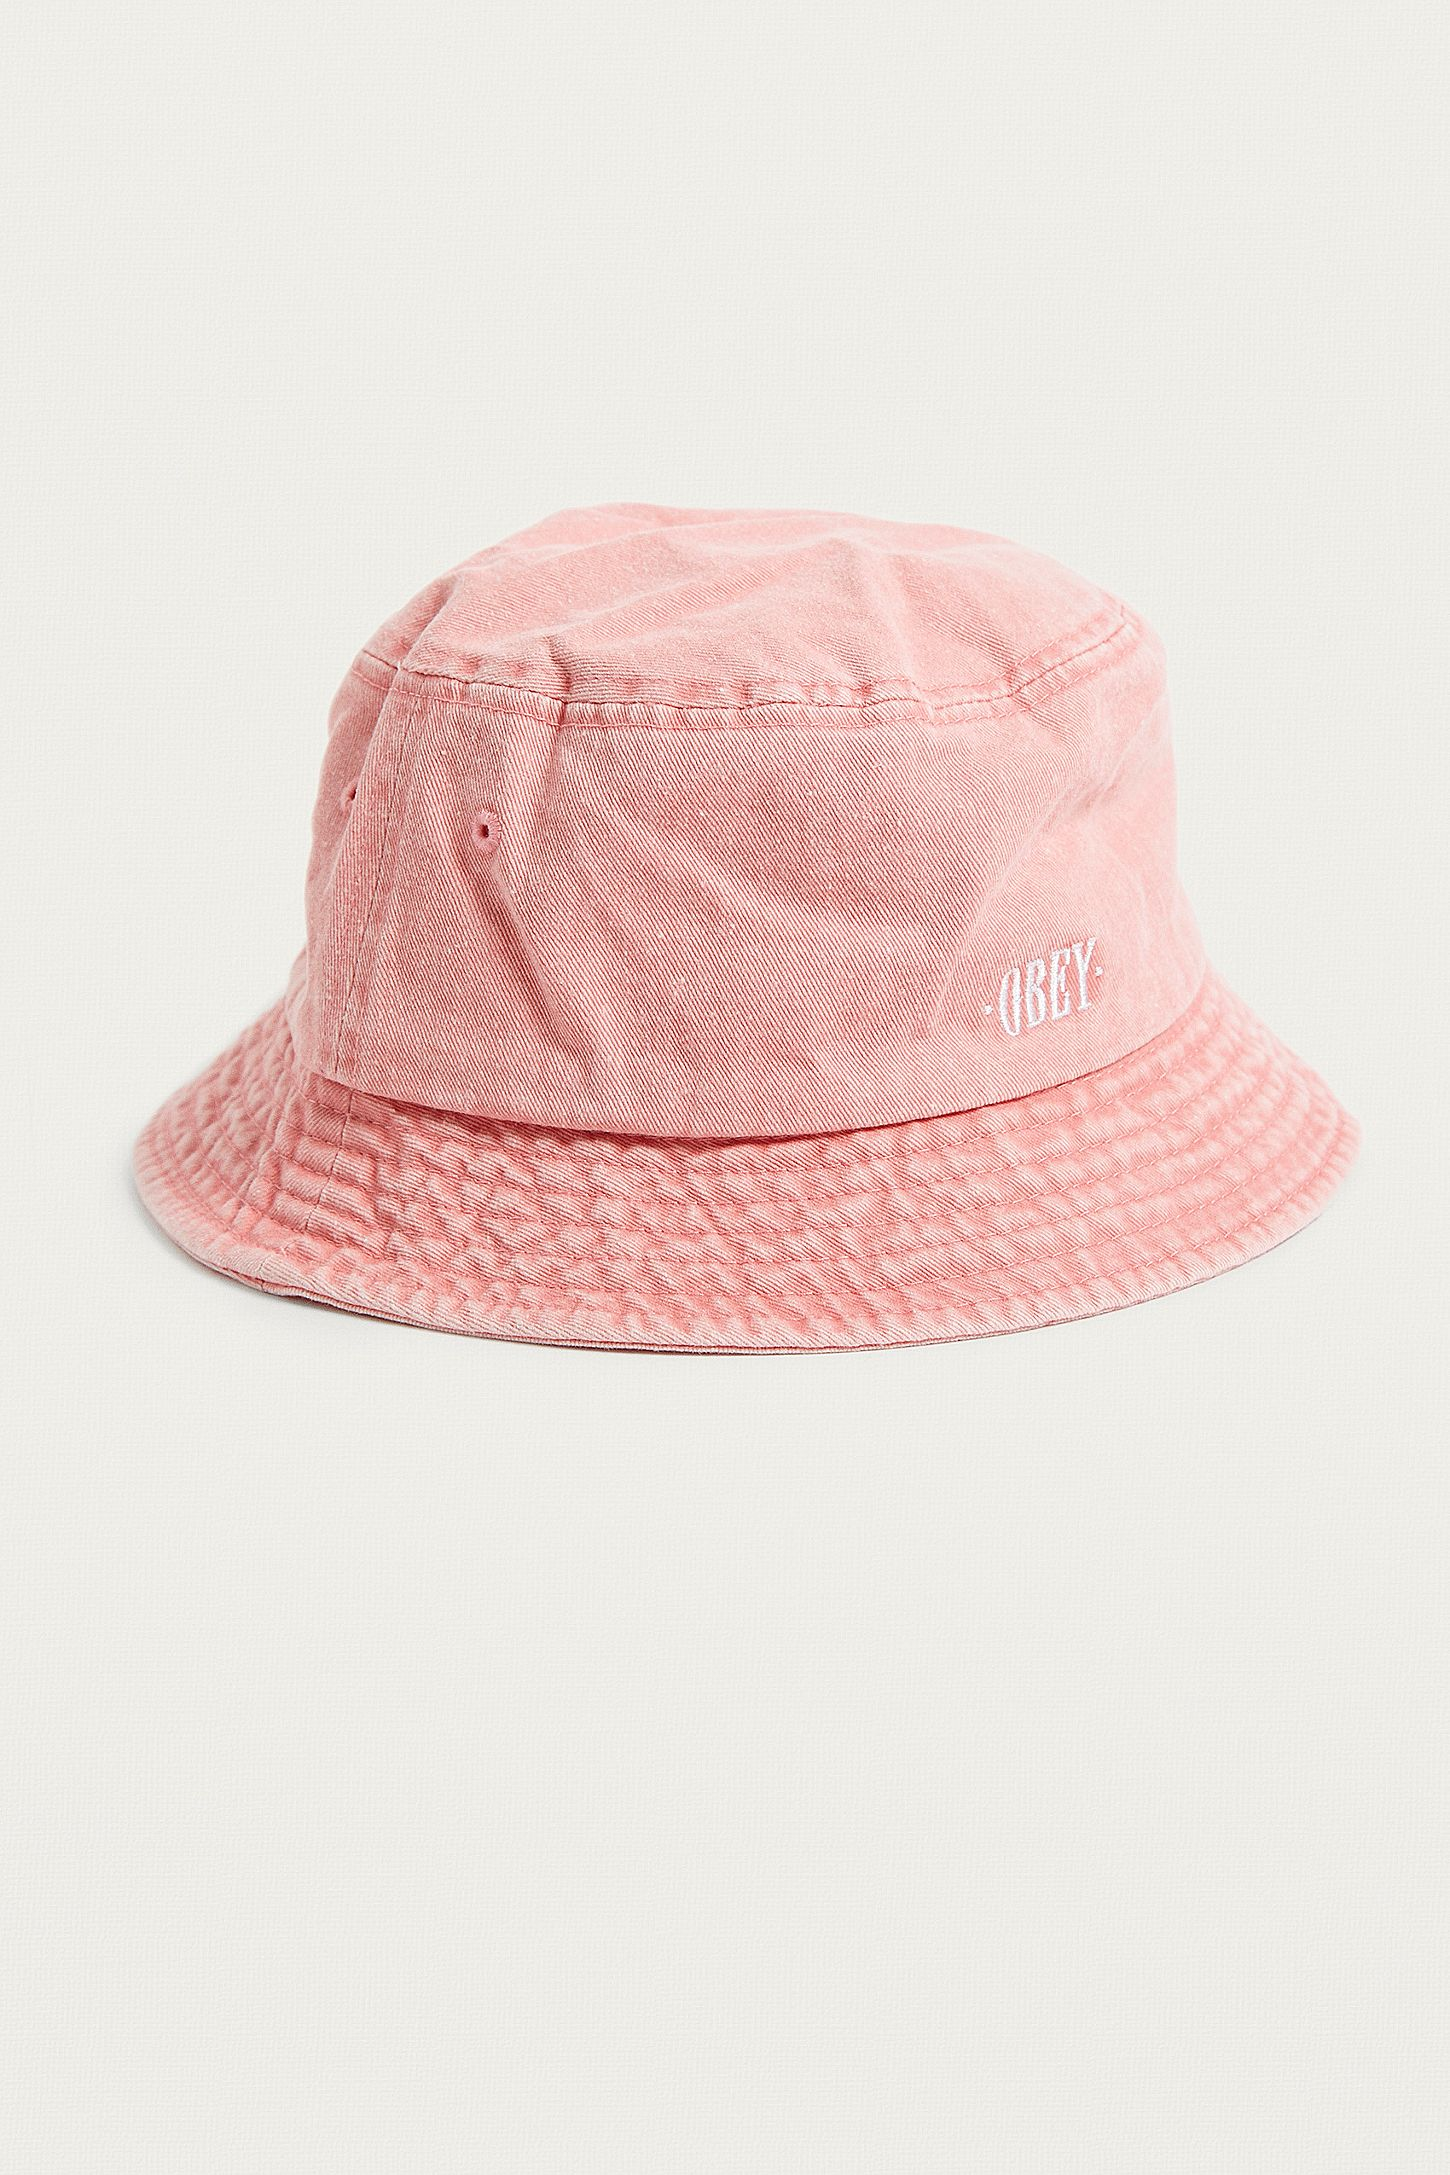 43a01245d6b OBEY Respect Coral Bucket Hat. Click on image to zoom. Hover to zoom.  Double Tap to Zoom